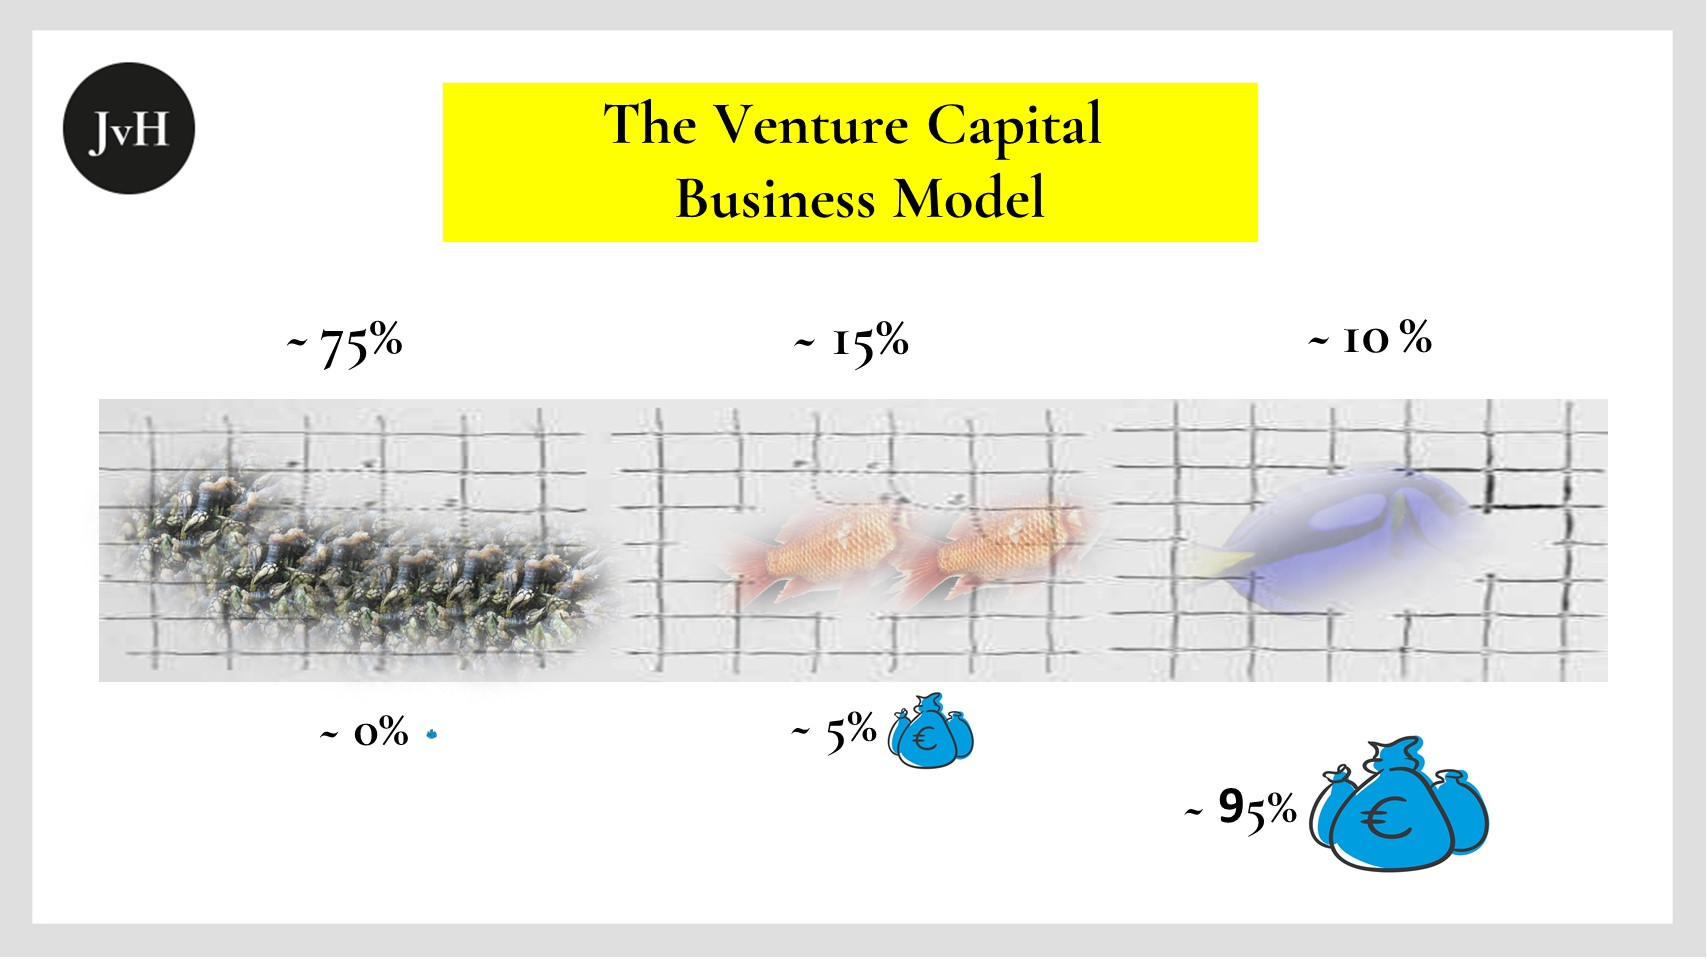 The VC Business Model: Pareto driven to extremes